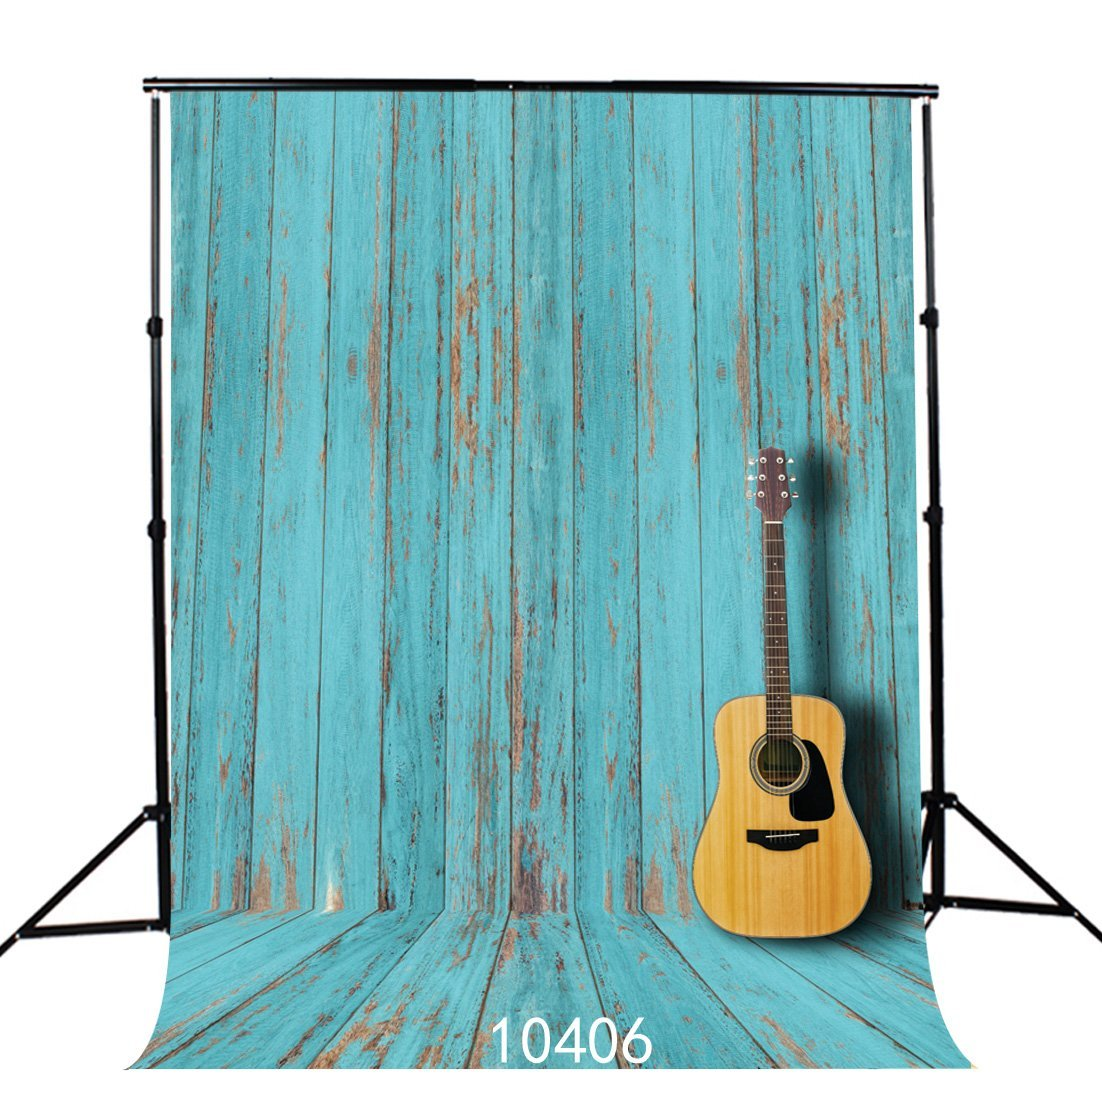 SJOLOON 5X7ft Blue Wood Wall Poly Fabric Photo Backdrops Customized Studio Background Studio Props JLT10406